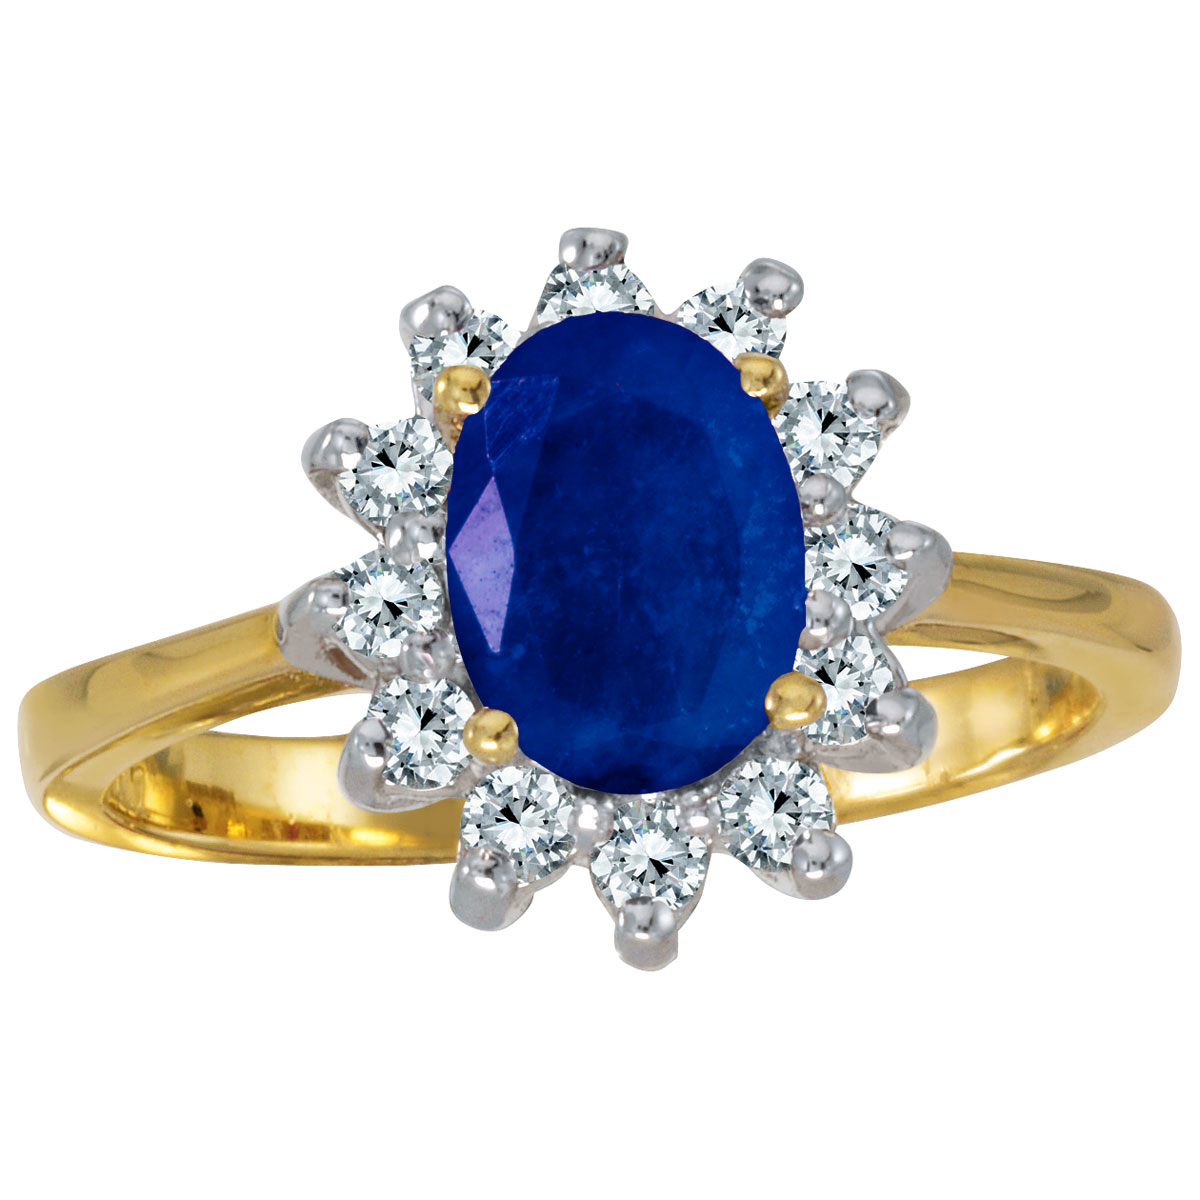 14k Yellow Gold Oval Sapphire And Diamond Ring by